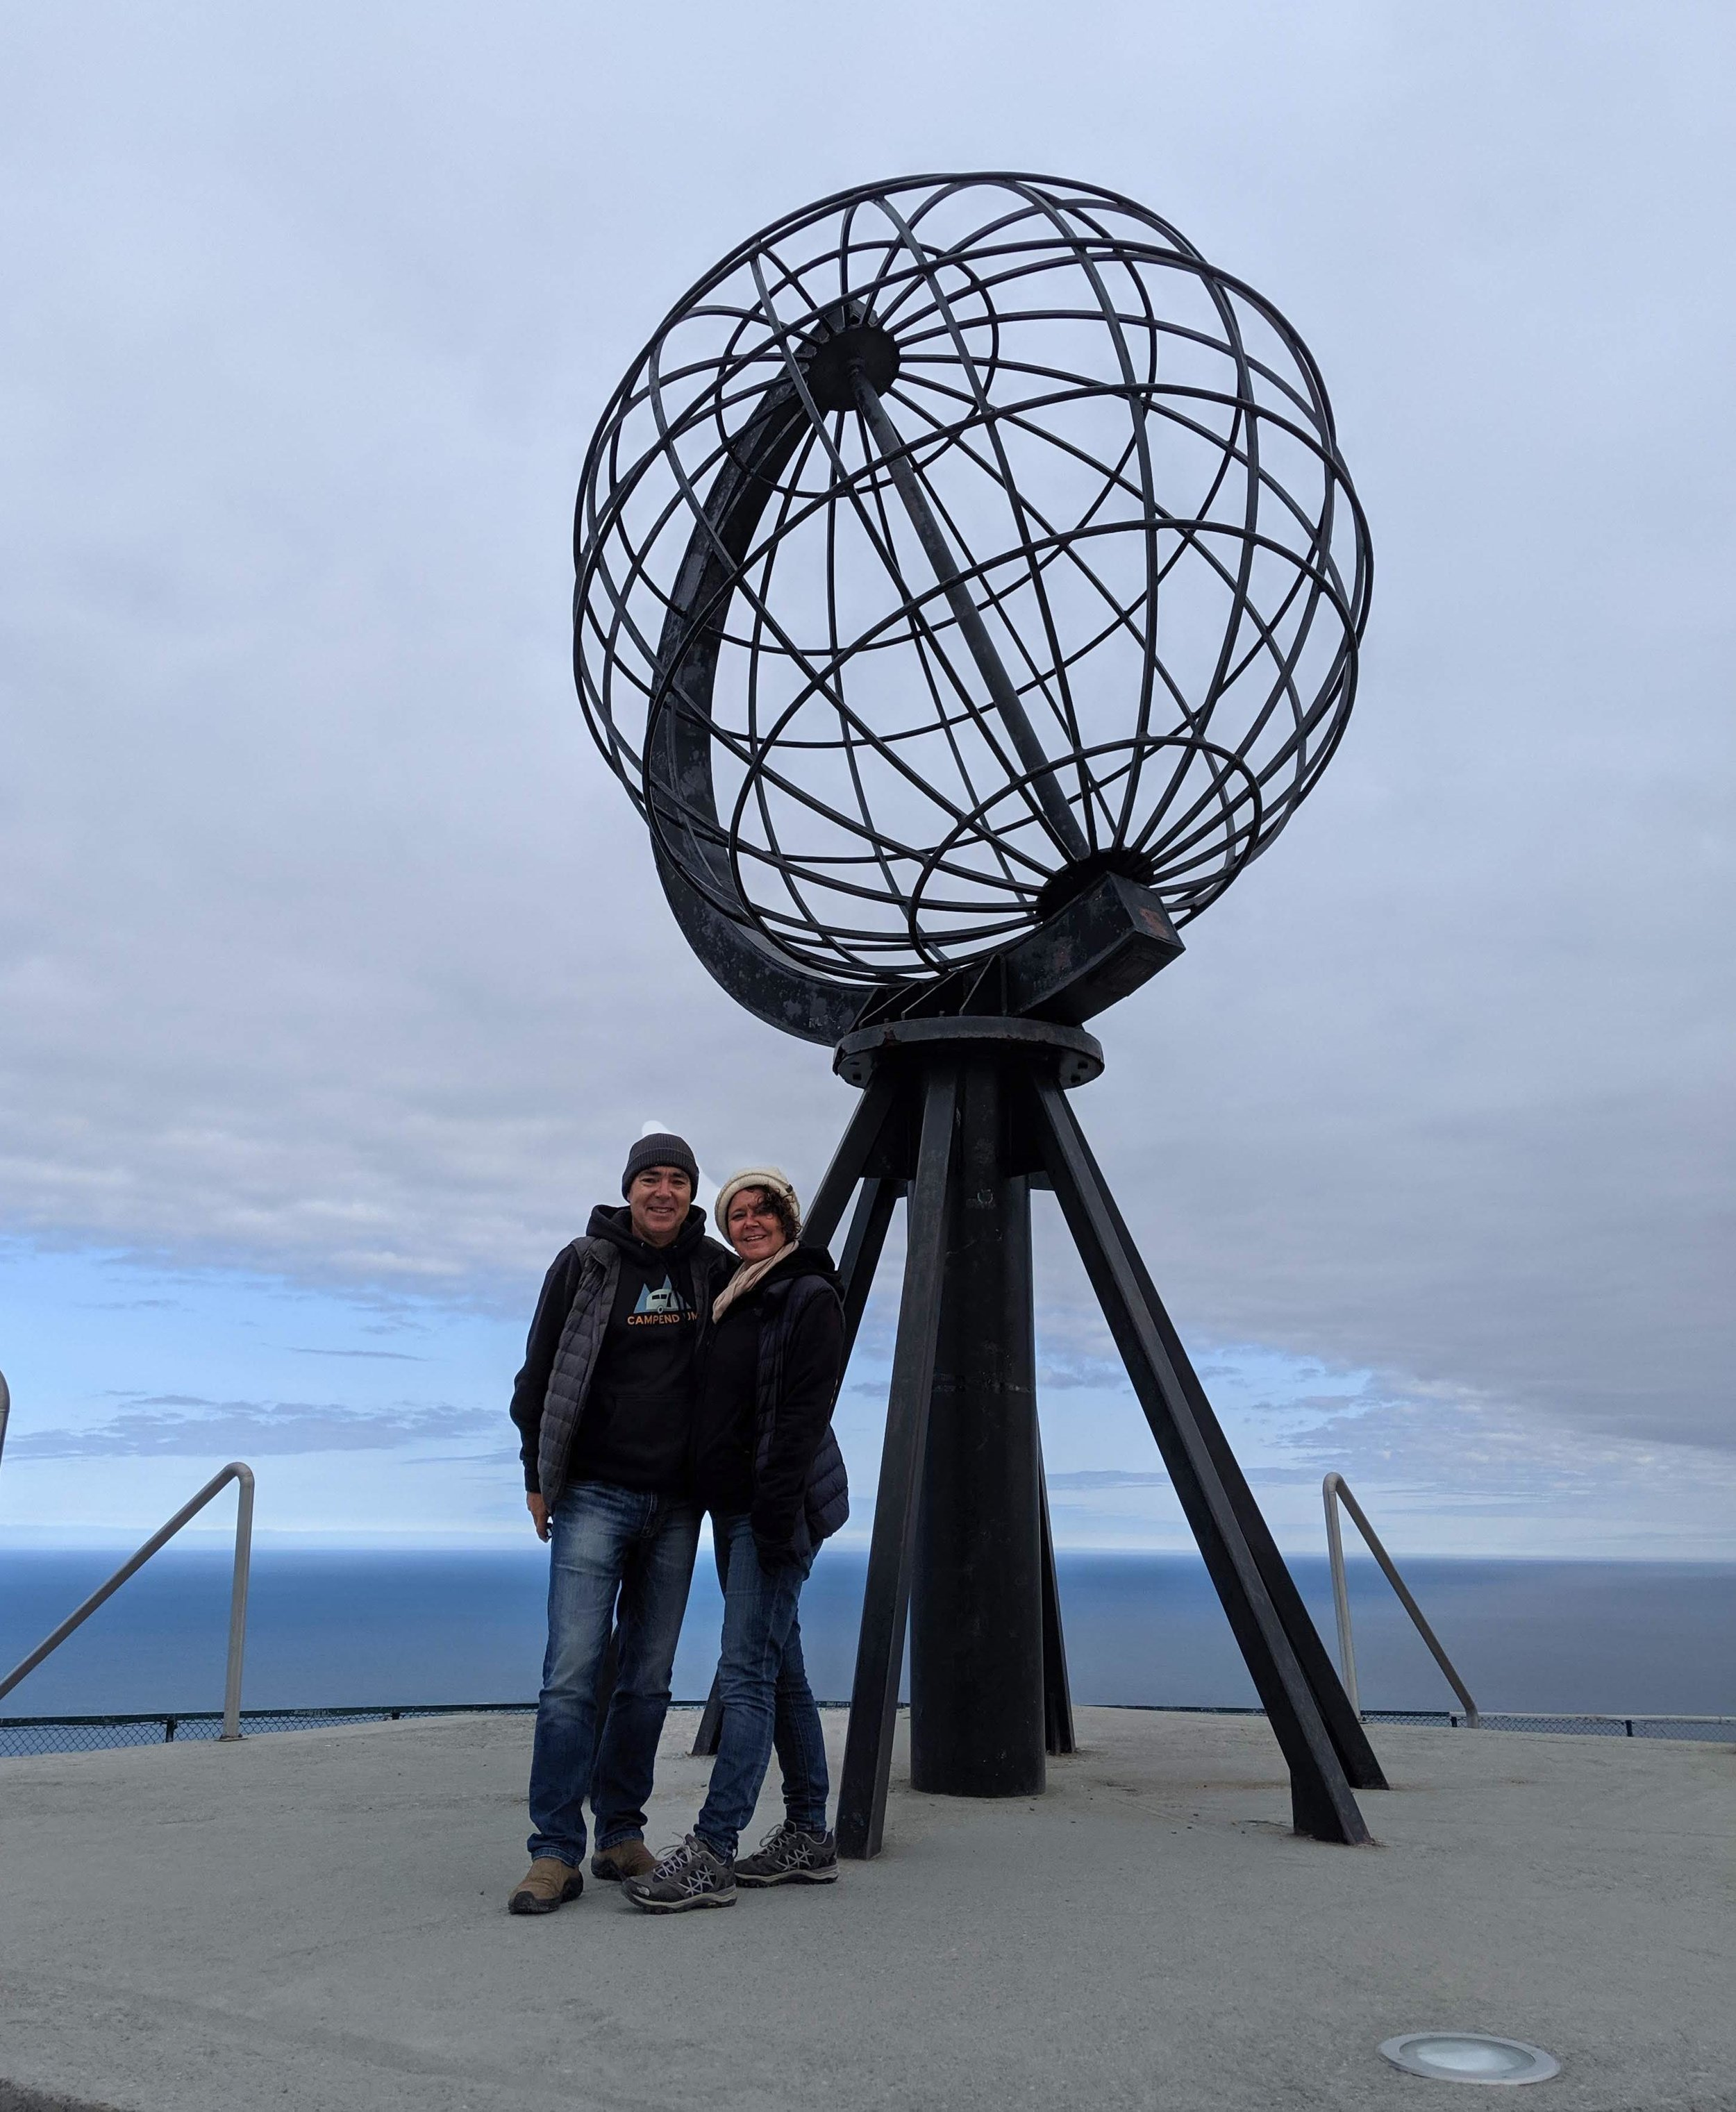 The typical Nordkapp Pose